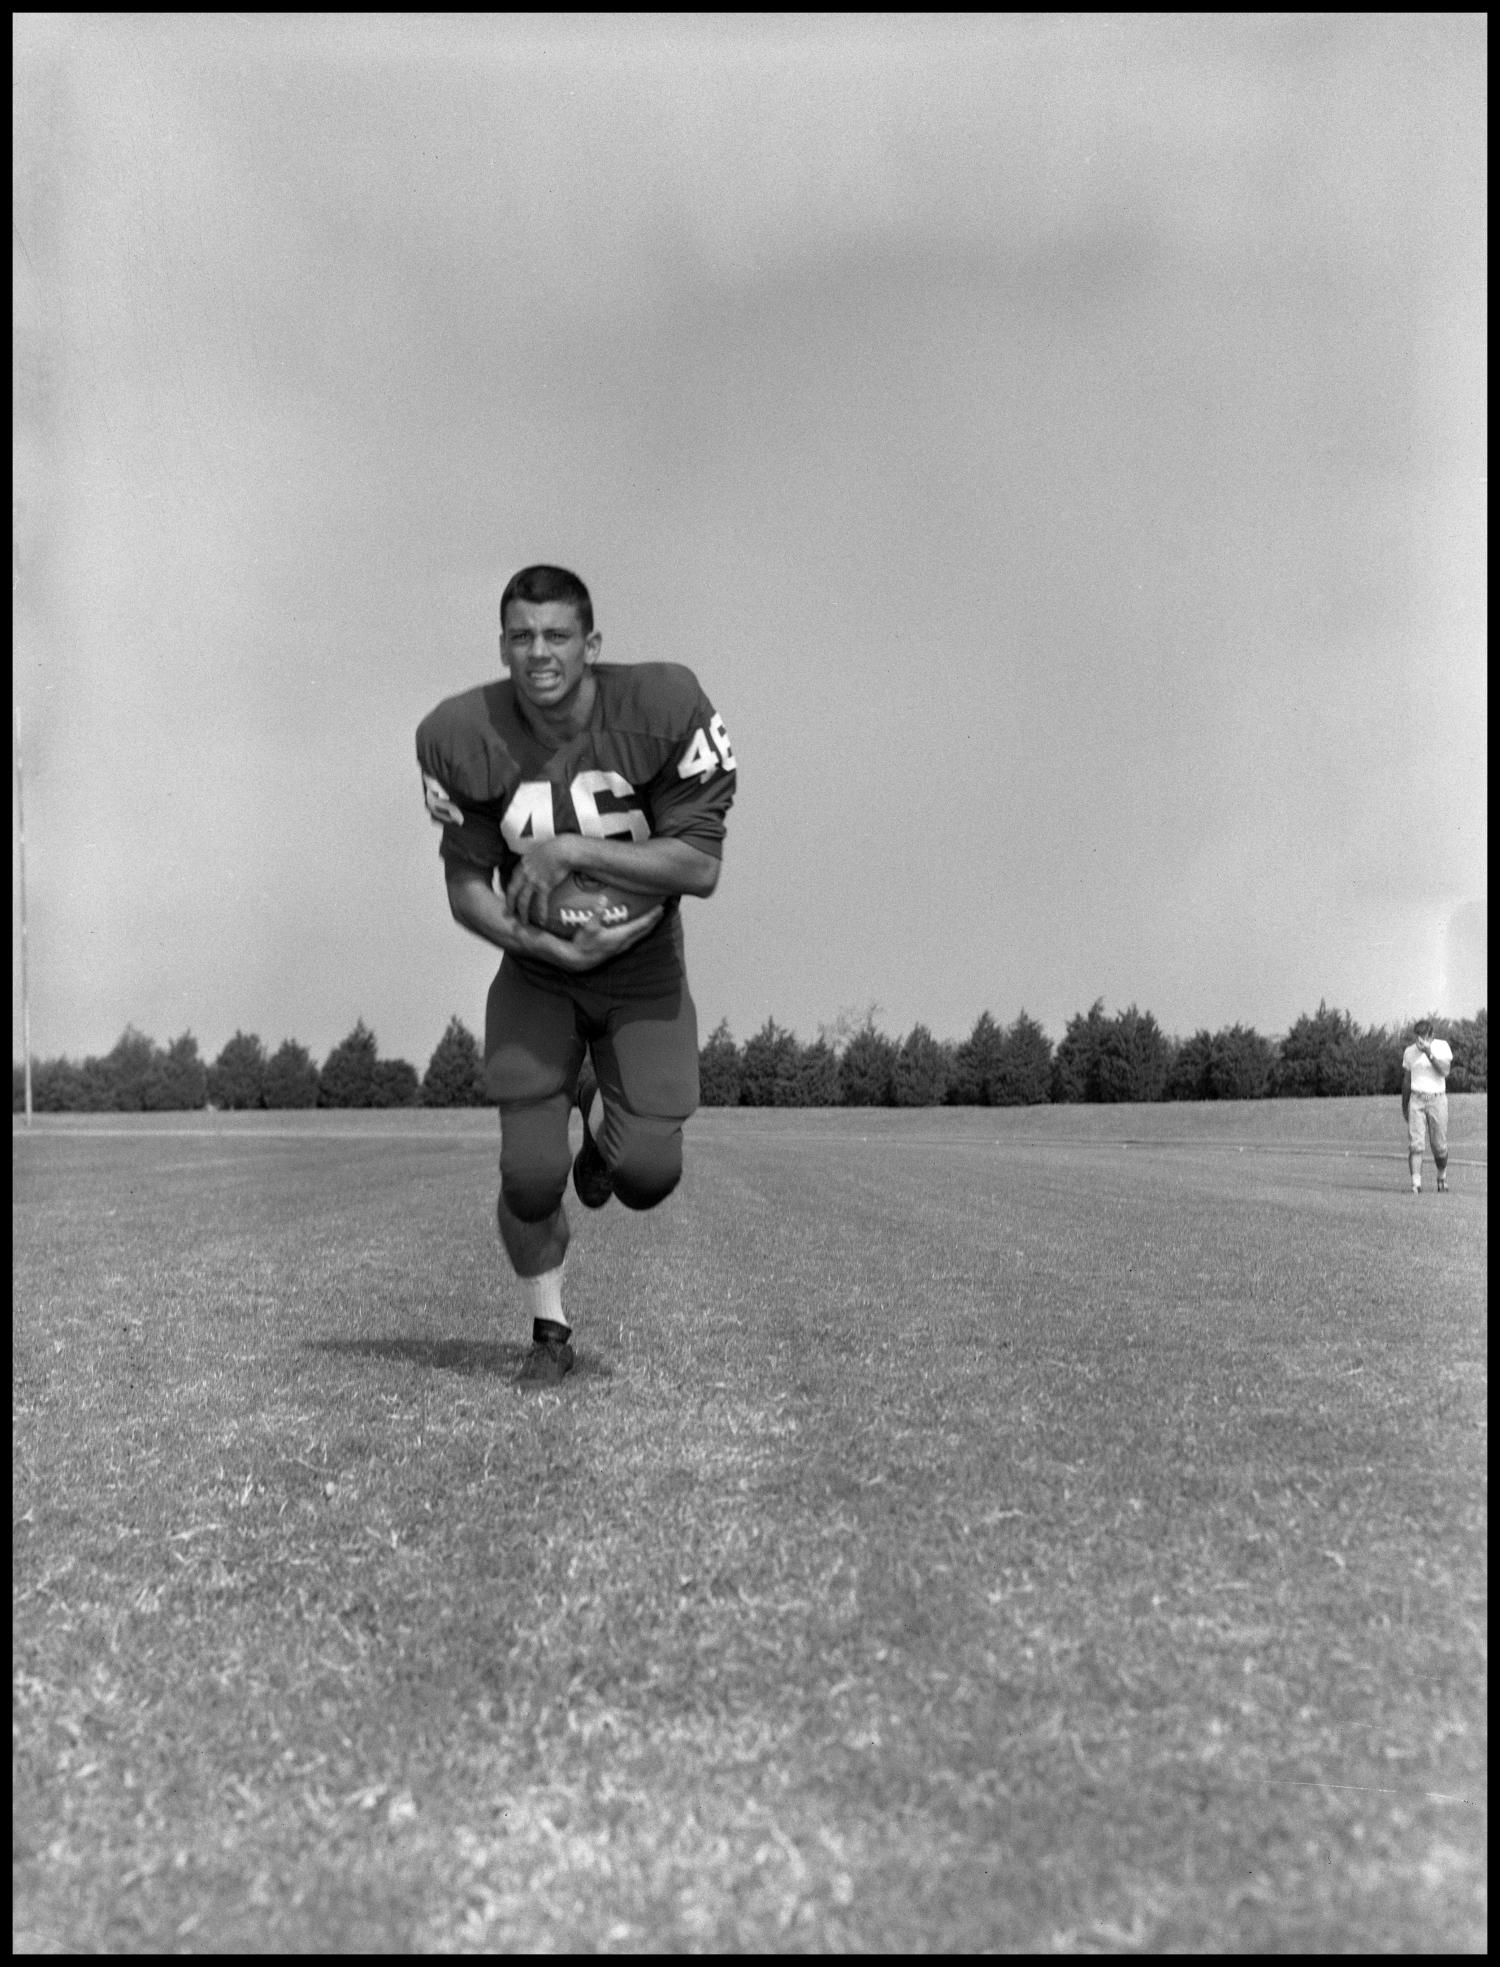 [Photograph of Bobby Richardson], Photograph of Bobby Richardson, a football player at North Texas State College. He holds a football and wears jersey number 46. Another man can be seen in the right of the image.,